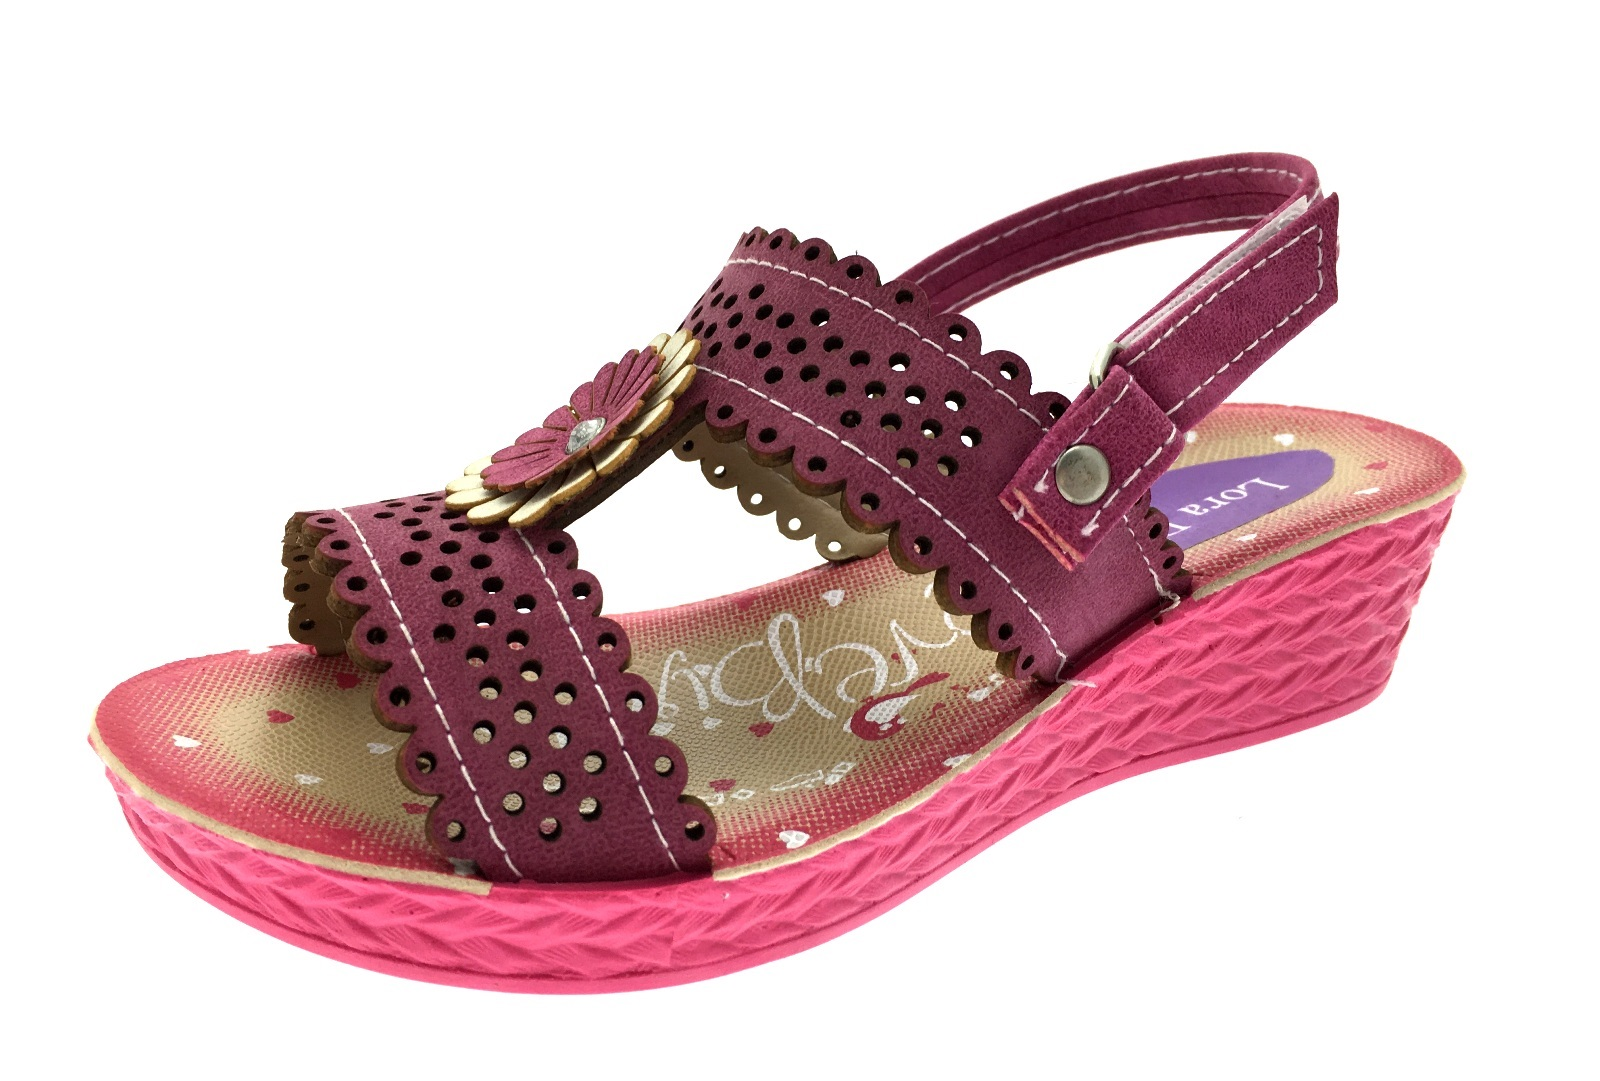 Kids' Wedge Shoes. Clothing. Shoes. Kids & Baby Shoes. Kids' Wedge Shoes. Showing 48 of results that match your query. Search Product Result. Product - Child Premium Leather Full Sole Ballet Shoes. Product - Rachel Shoes Little Girls White Patent Wedge Bow Dress Shoes. Product Image. Price $ Product Title.